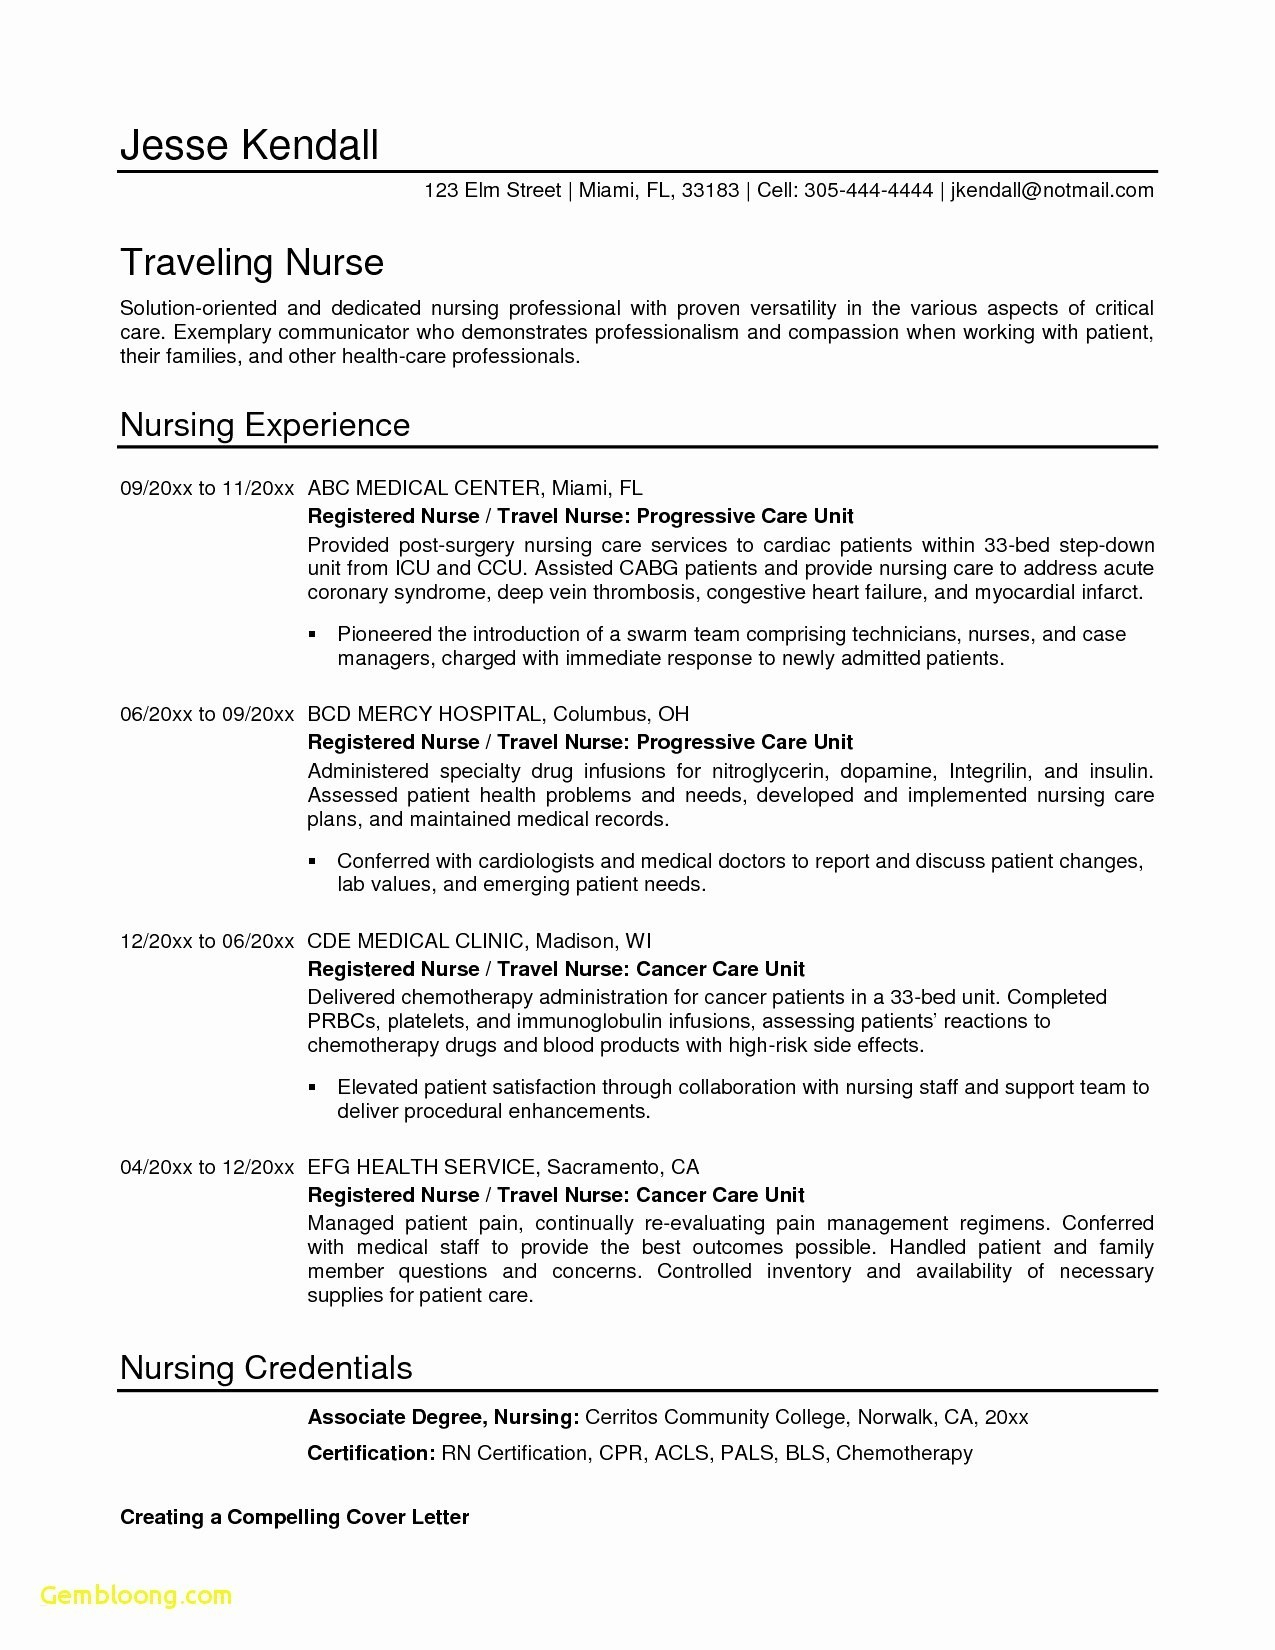 Nursing Resume Cover Letter Template Free - Lovely Free Cover Letter Template